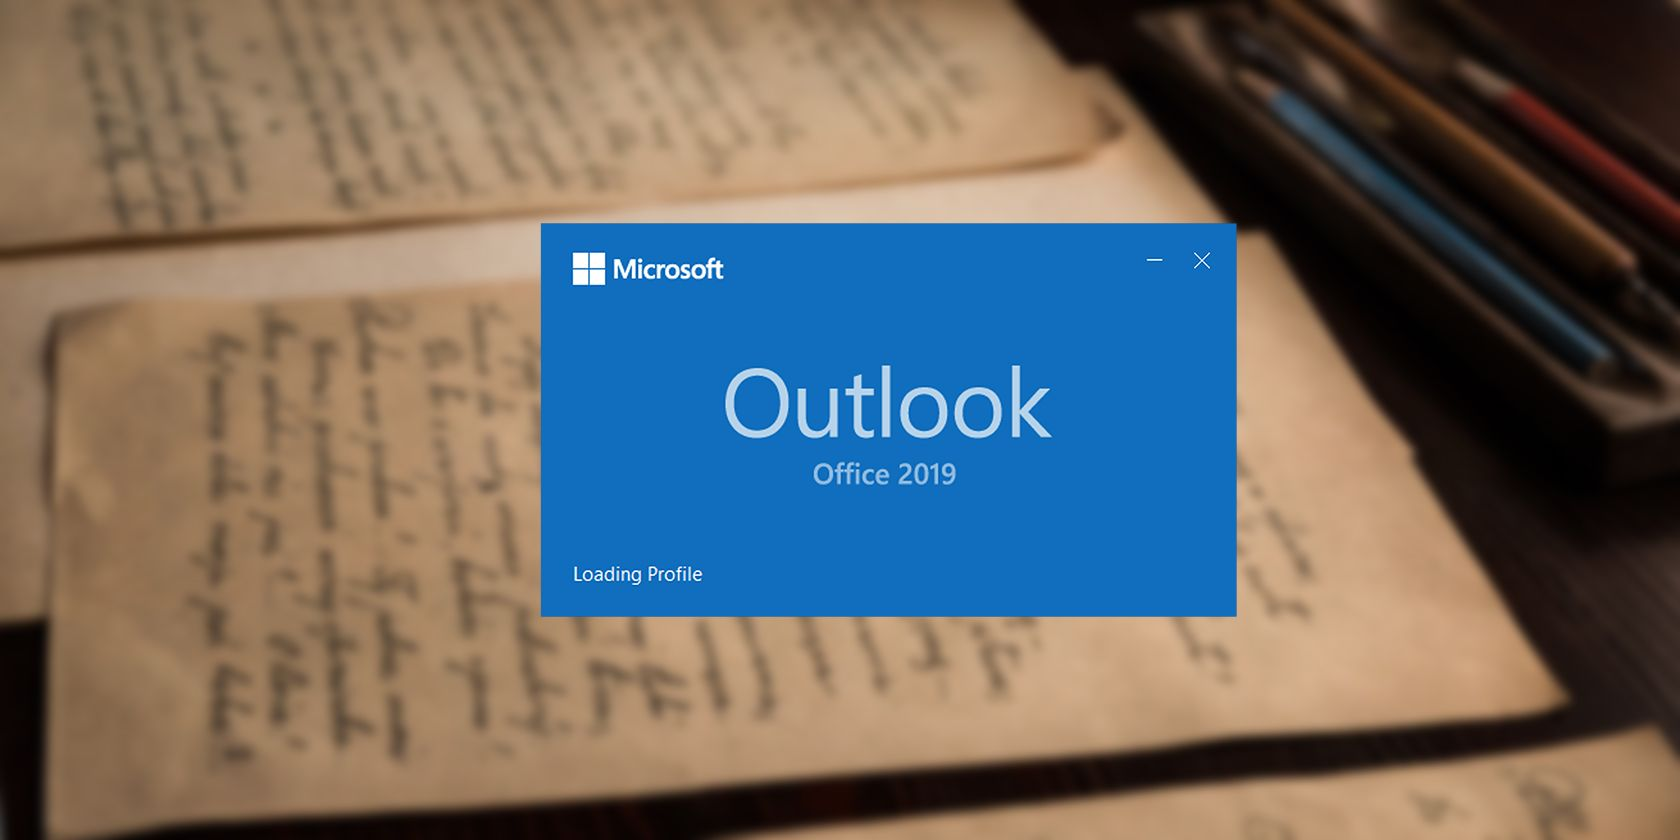 7 Fixes for the Outlook Stuck on Loading Profile Problem